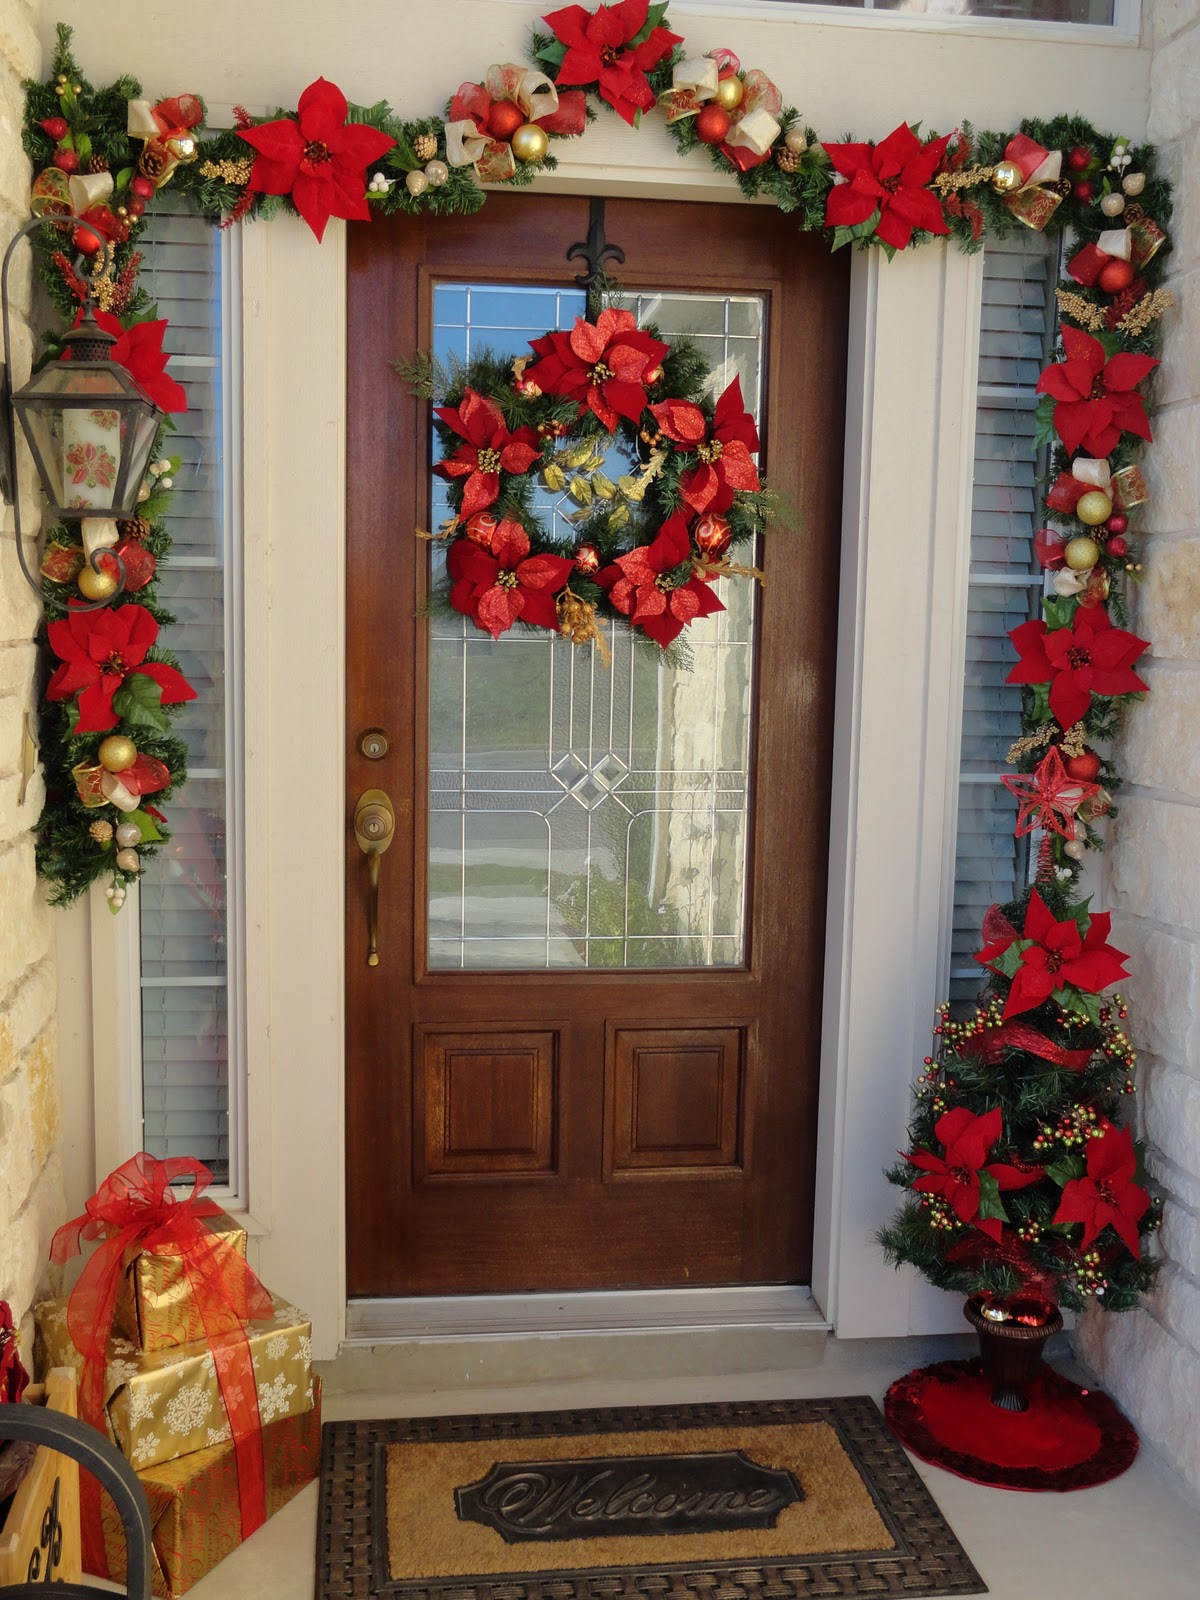 Christmas Decorations For Neighborhood Entrances : Our home away from front door christmas decor